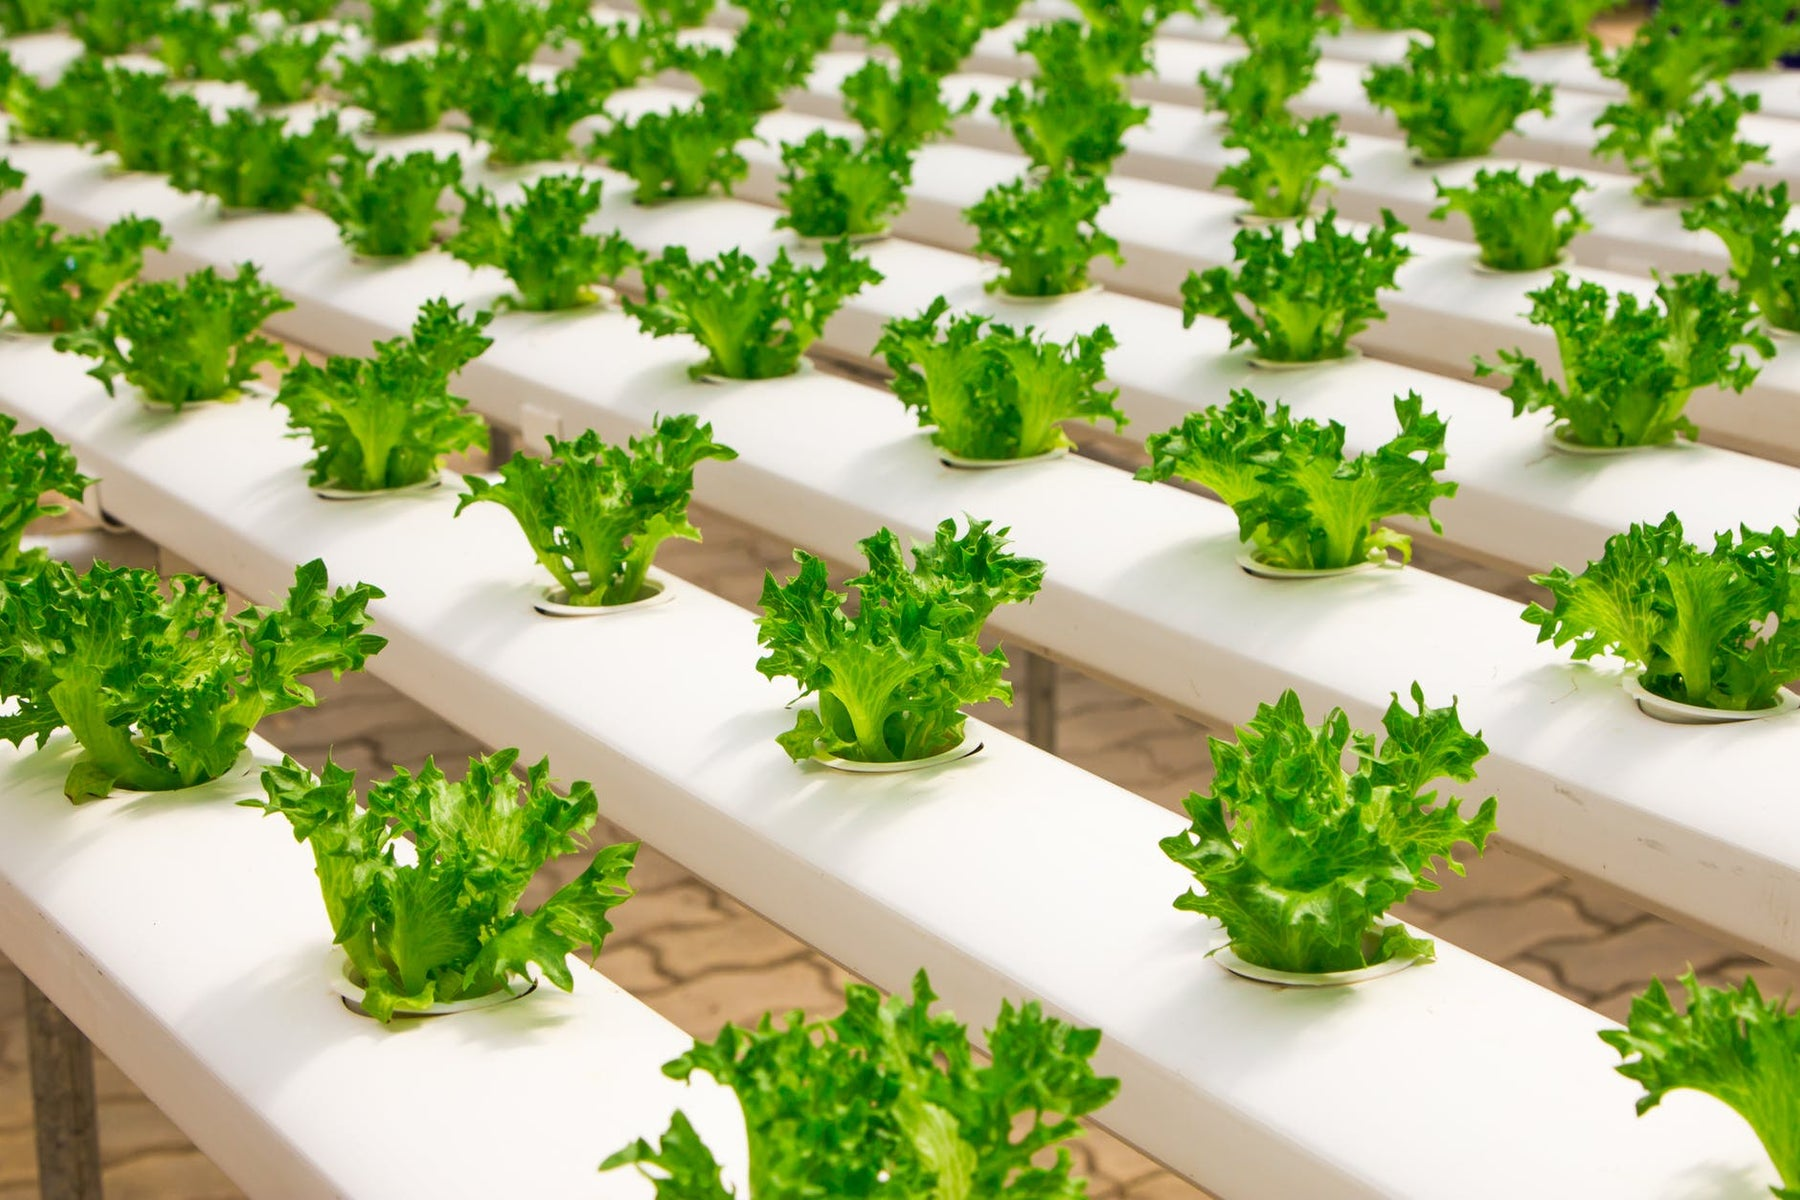 High-Tech Farmers are Using LED Lights for Growing Vegetables